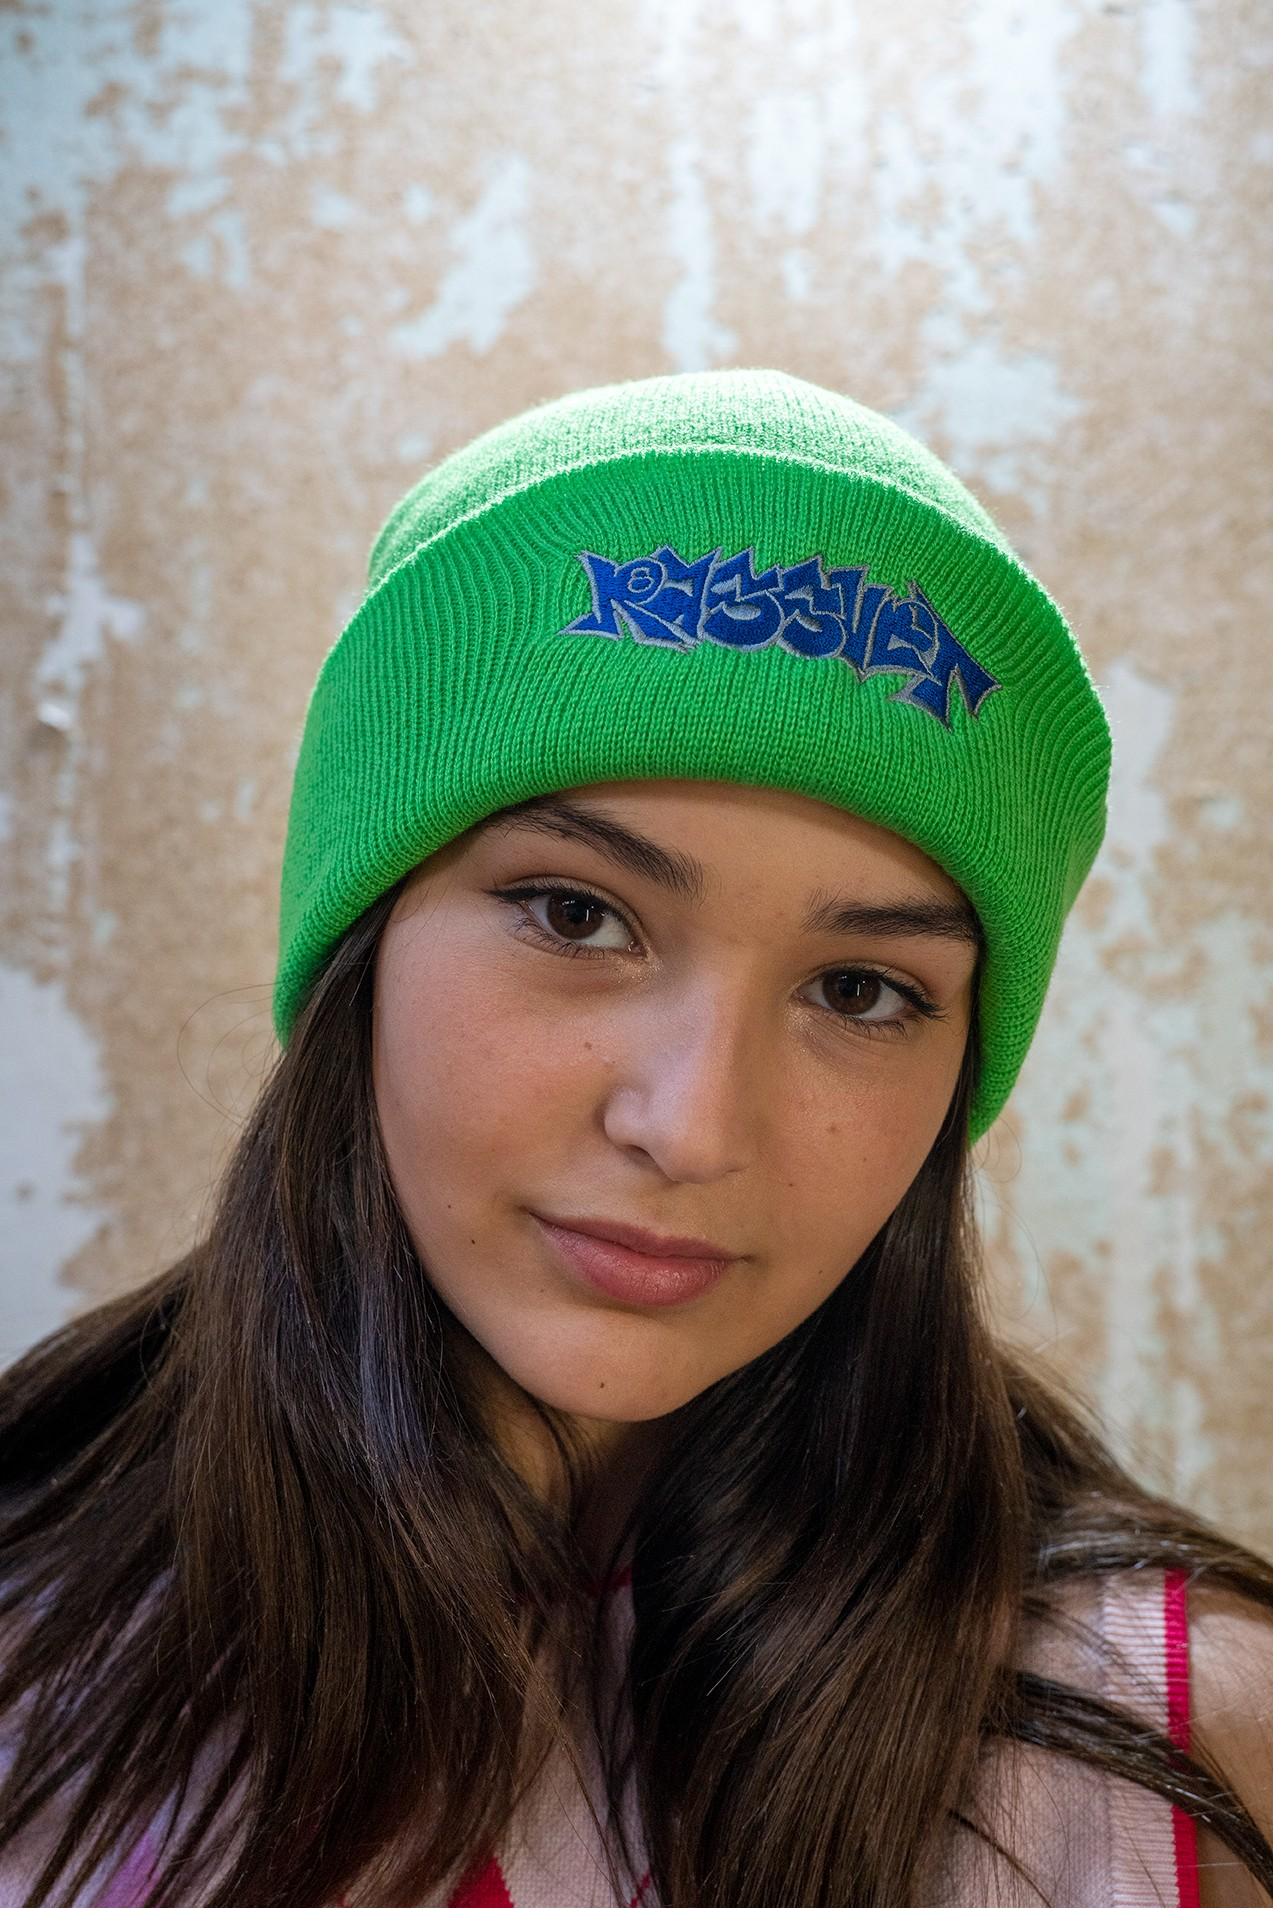 Paccbet Mens Beanie With Embroidery Bright Green